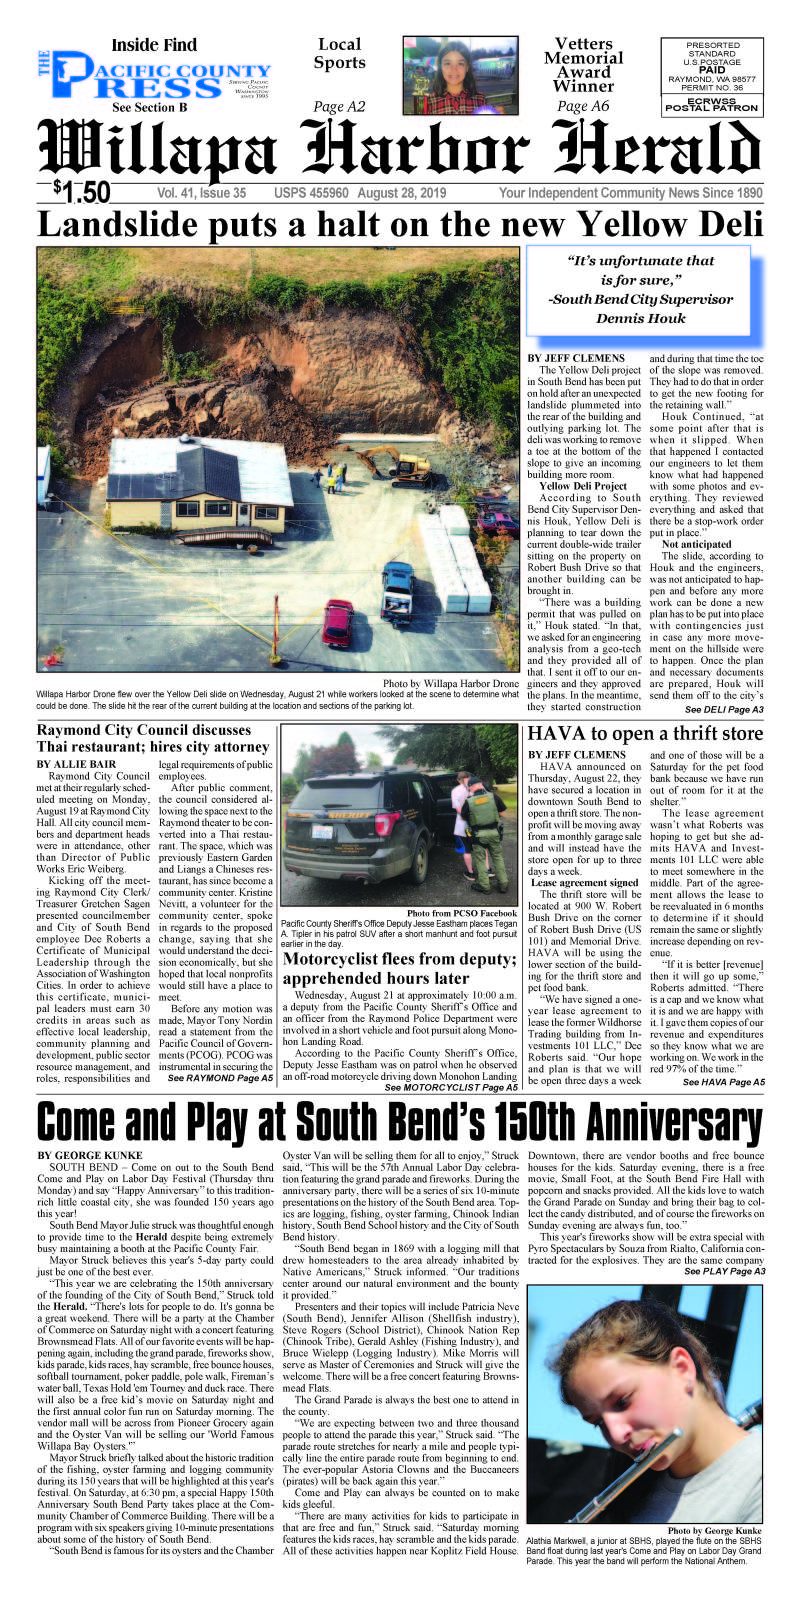 August 28, 2019 Willapa Harbor Herald